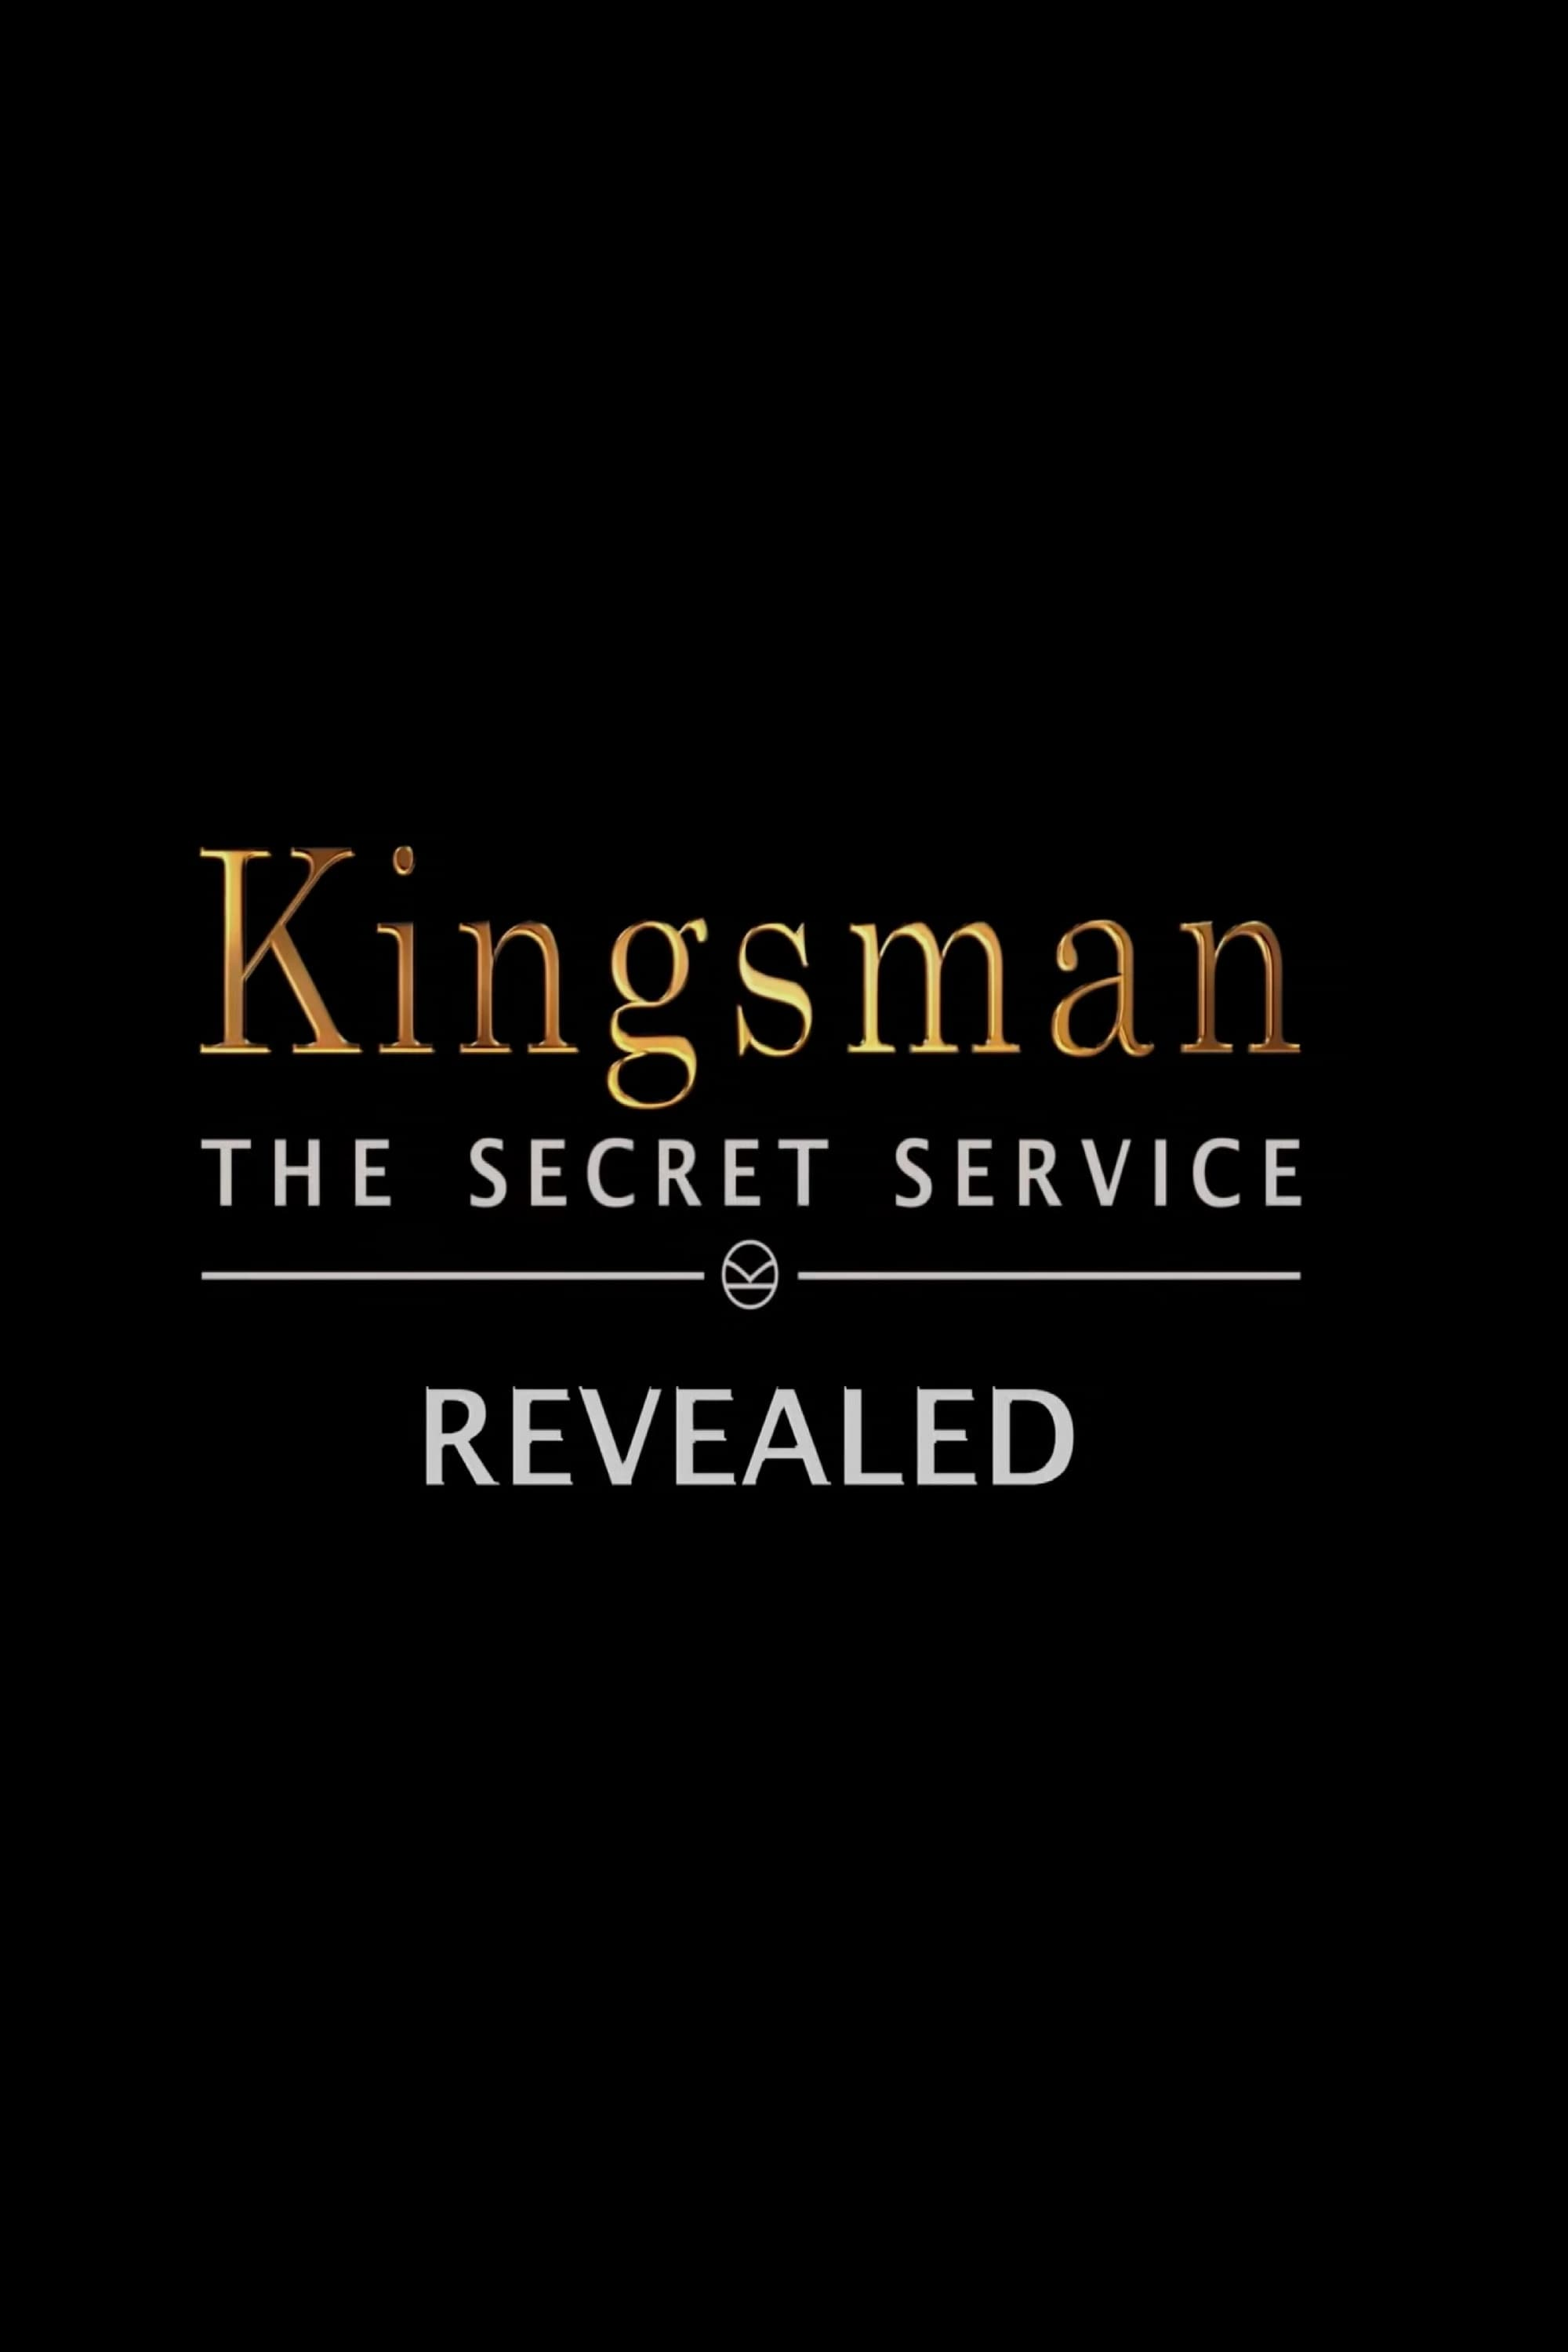 kingsman the secret service stream english